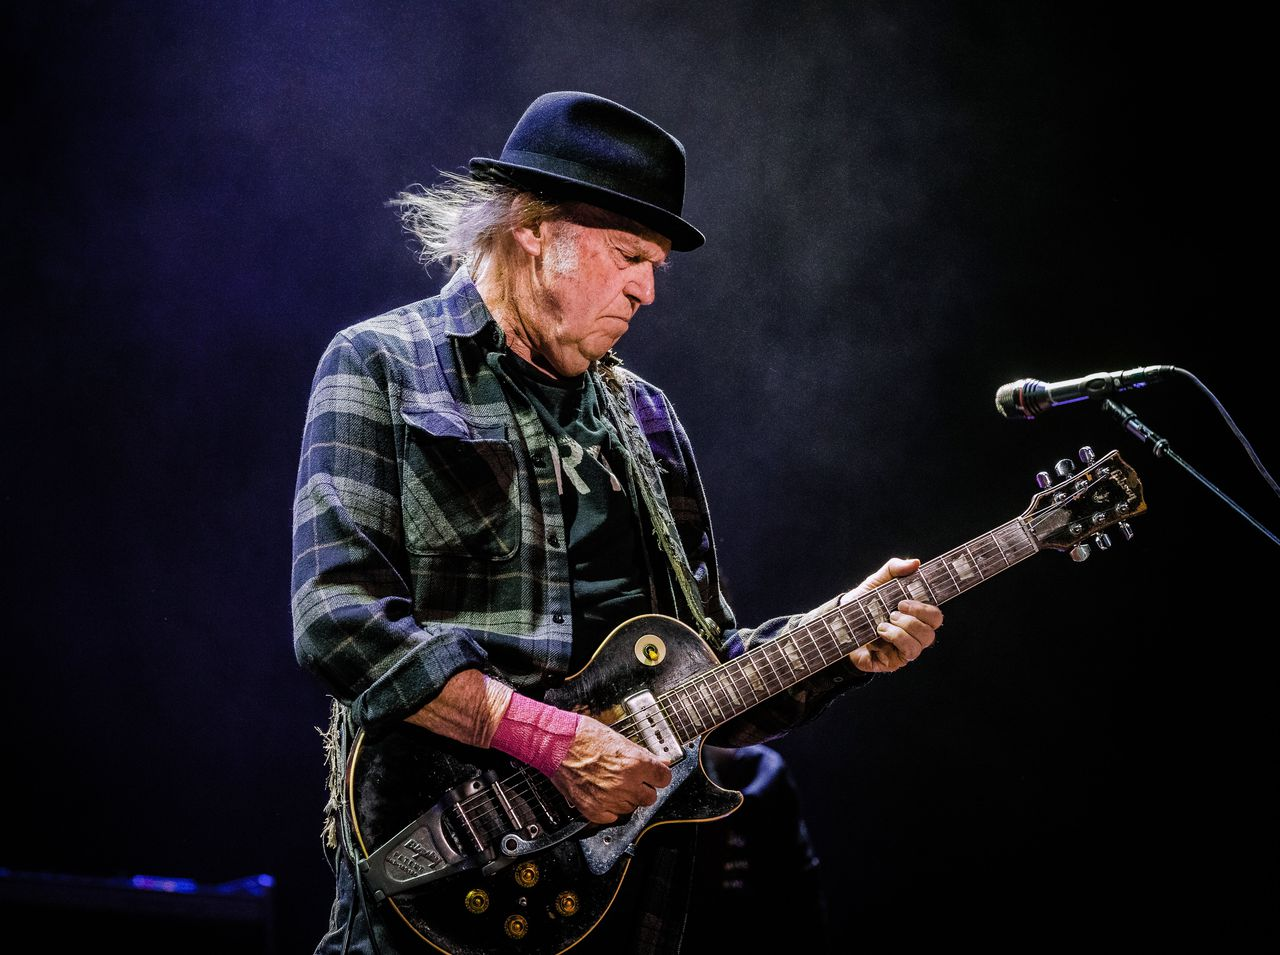 Neil Young met begeleidingsband Promise of the Real in de Ziggo Dome.